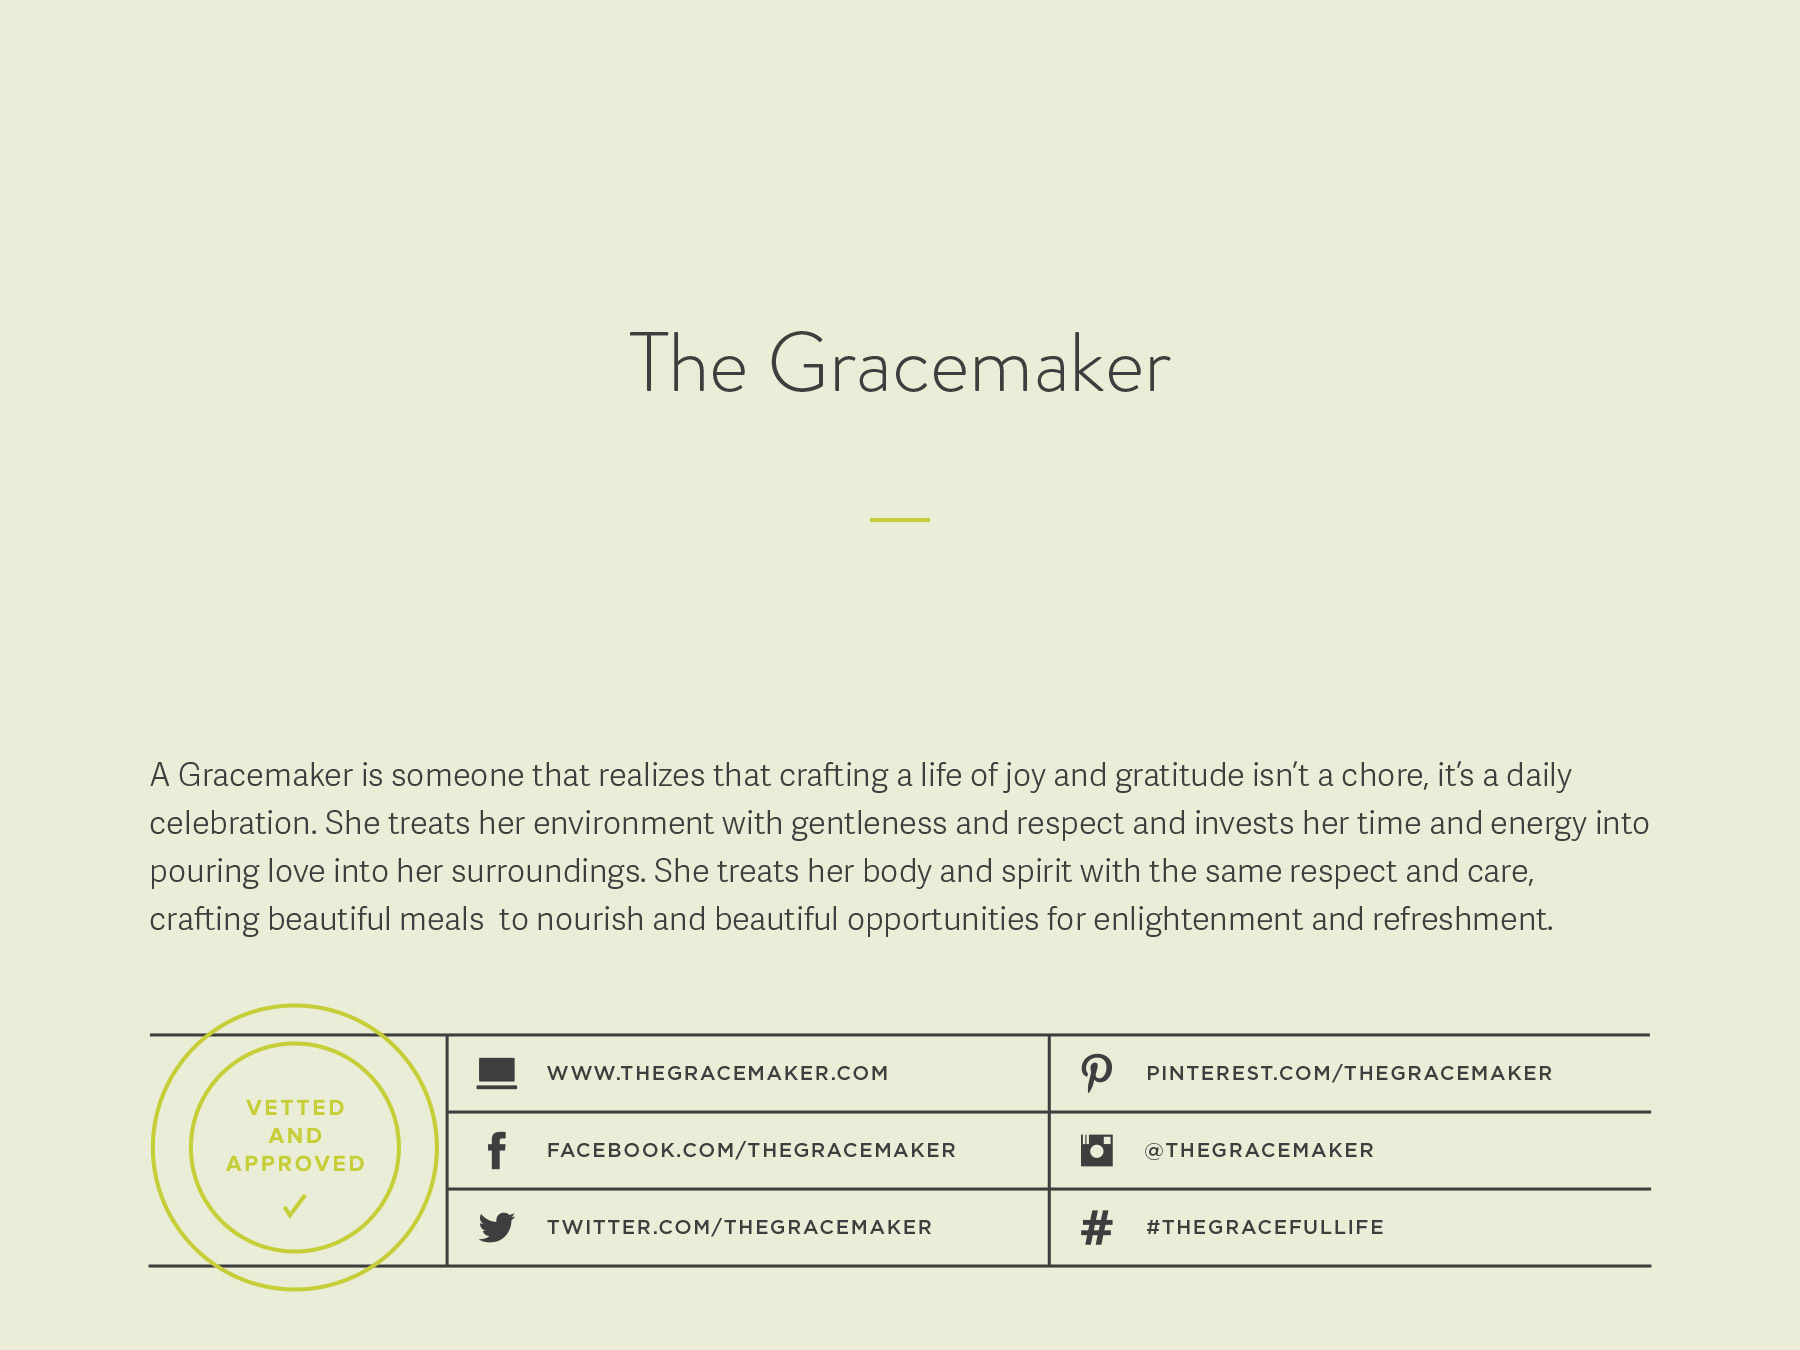 The Gracemaker company naming process